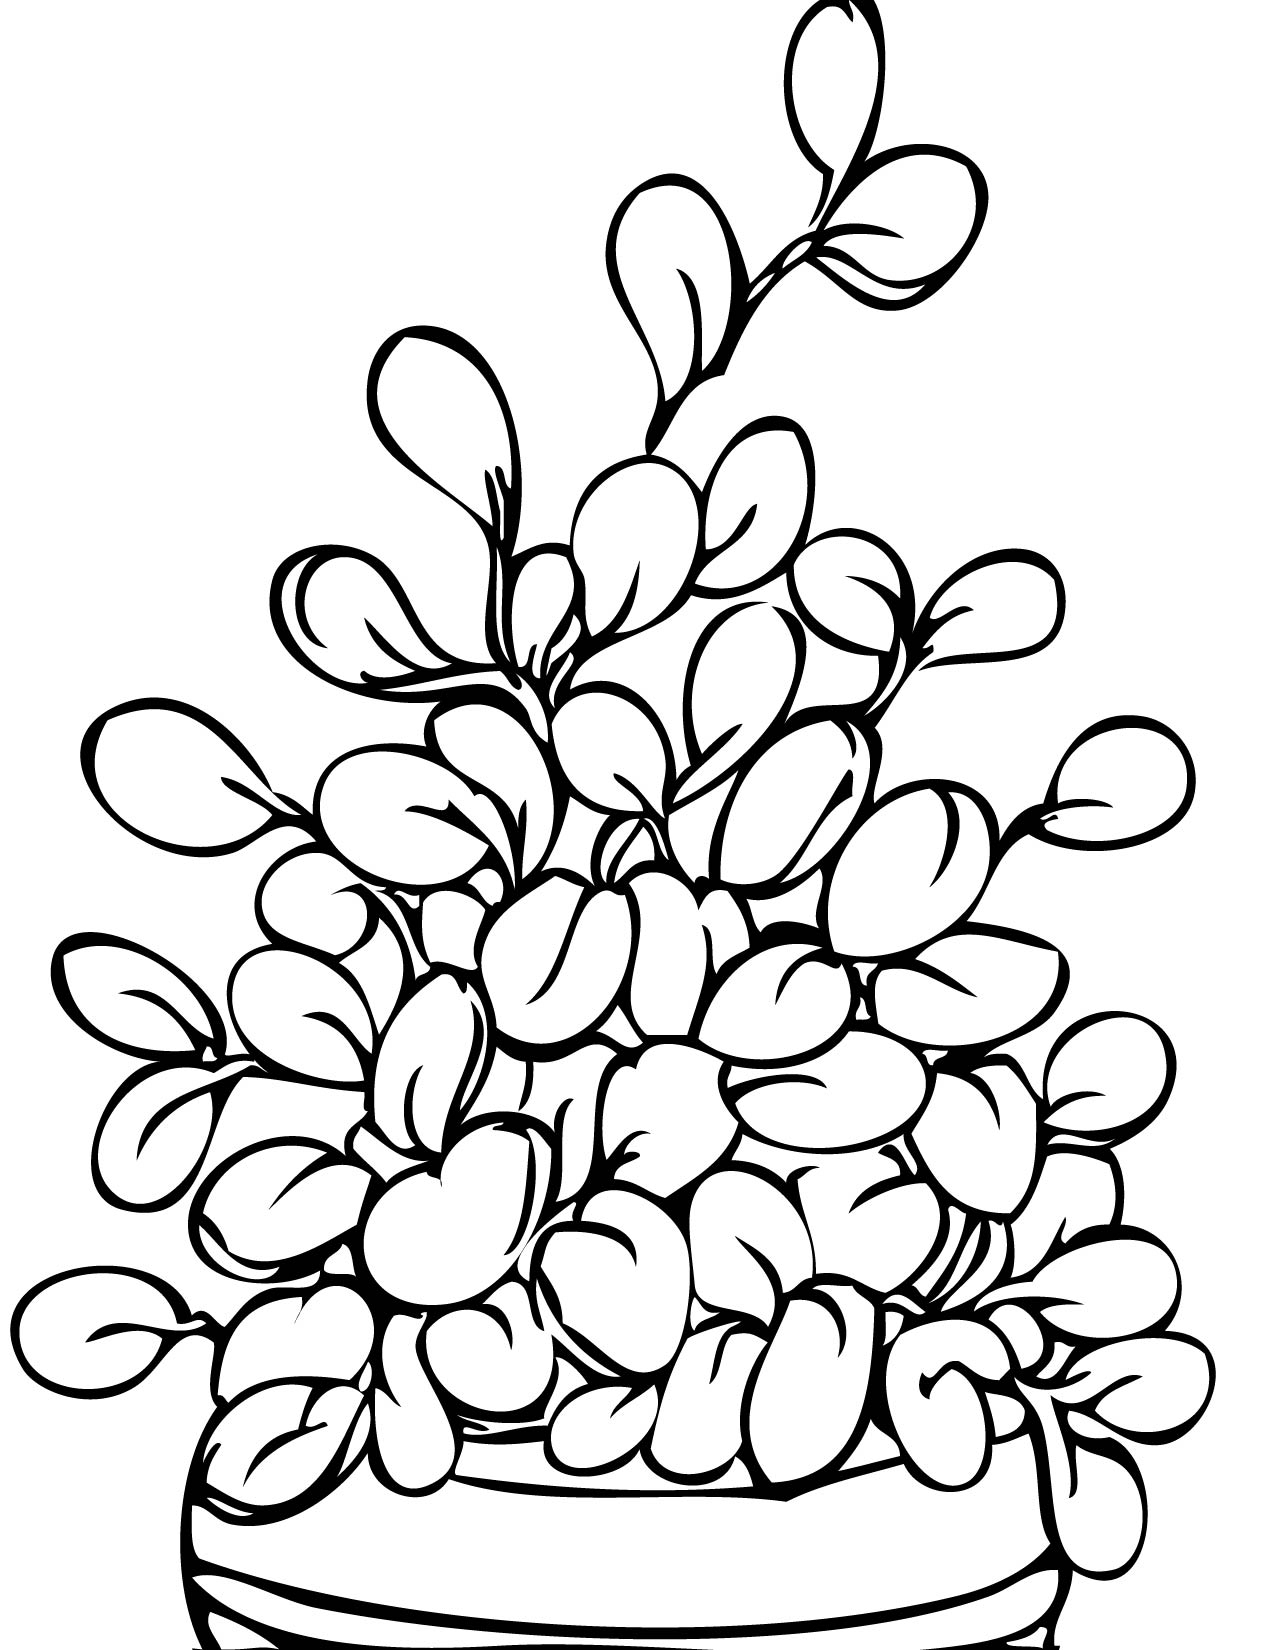 Tomato Plant Coloring Page Free Printable Pages New Bertmilne Printable Of Basil Herb Coloring Page Collection